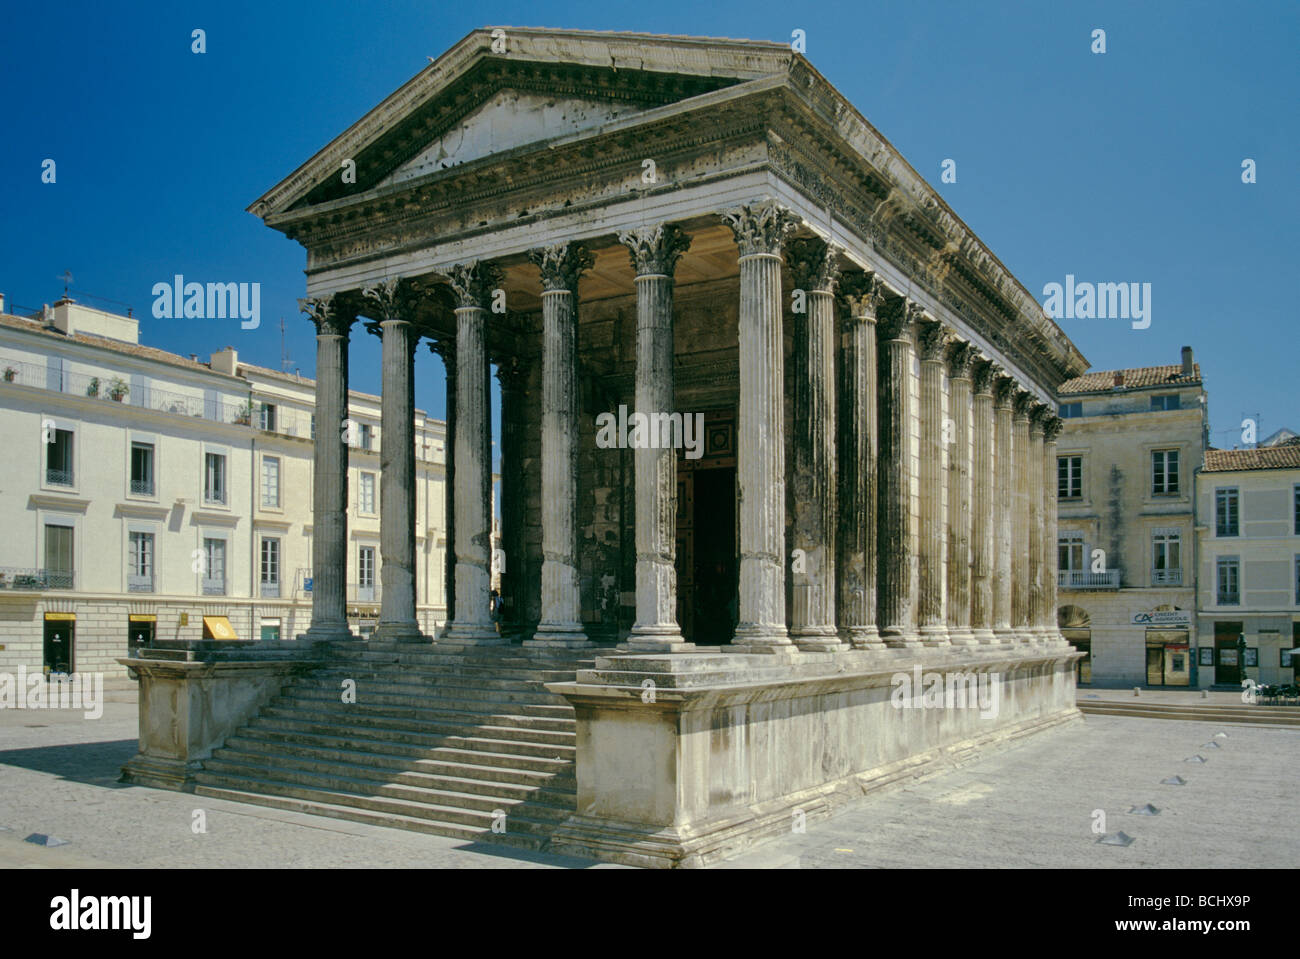 Maison Carree Square House Roman Temple At Nimes In Provence France